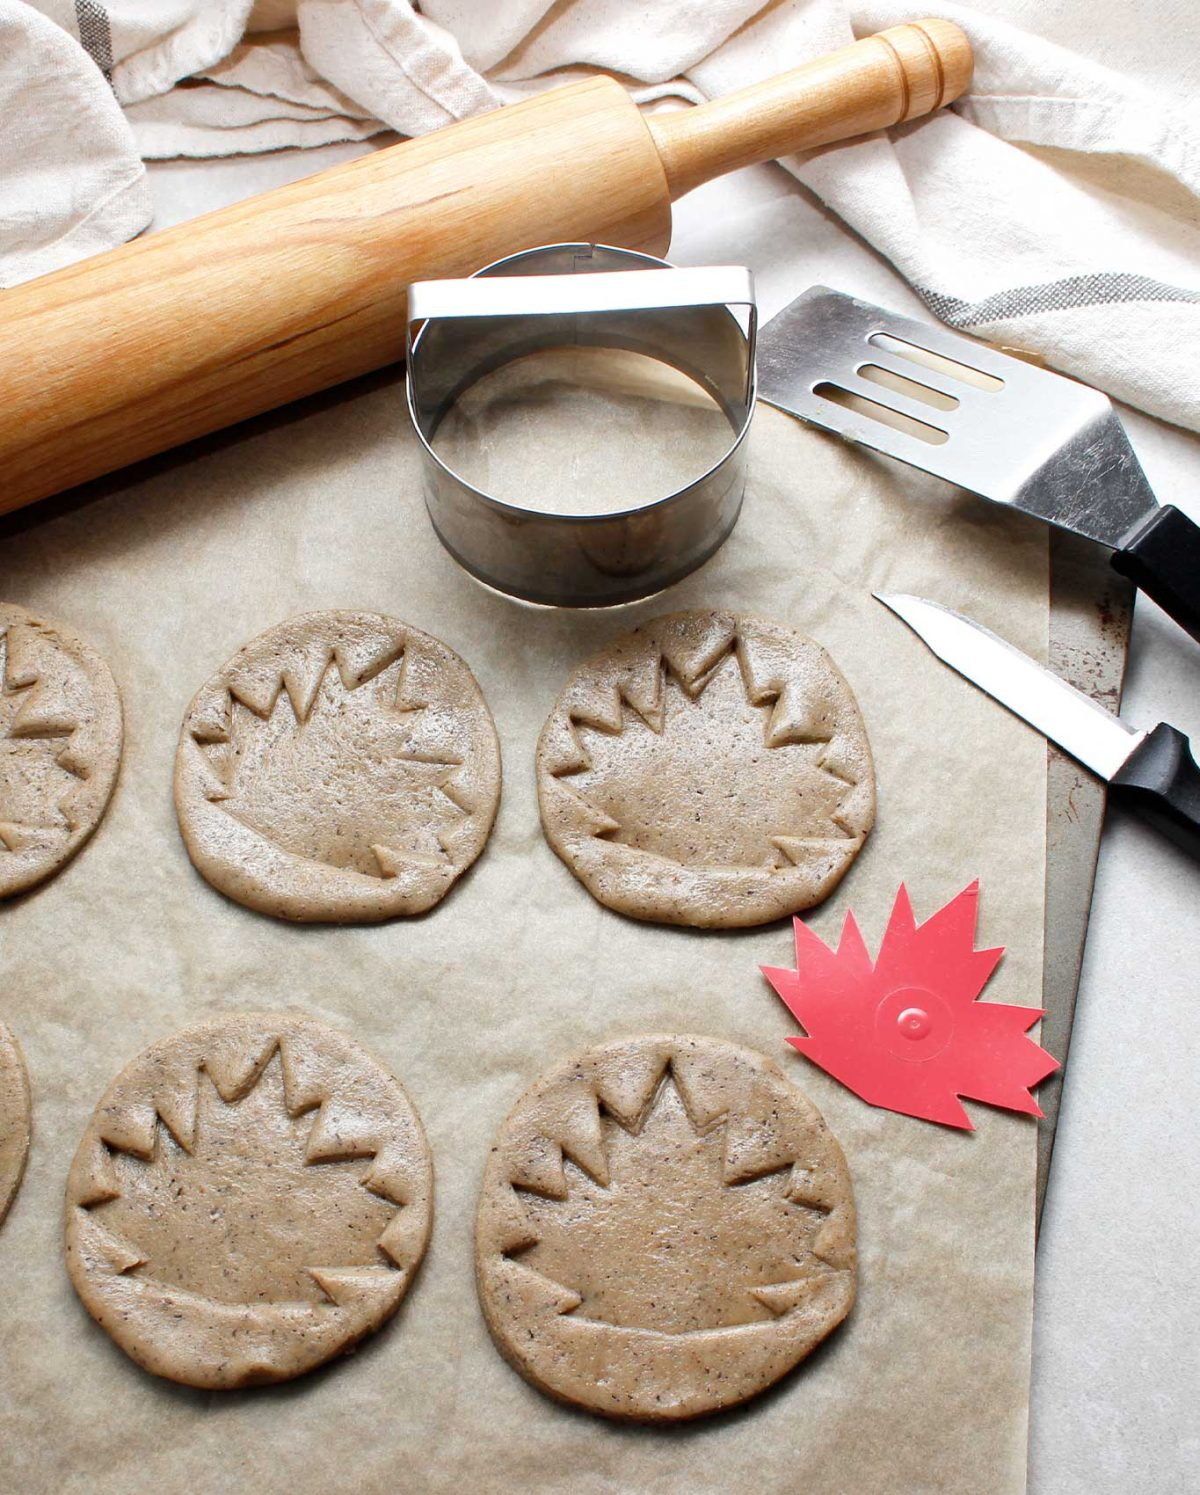 Perfectly shaped GF Vegan Maple Cookies ready to bake